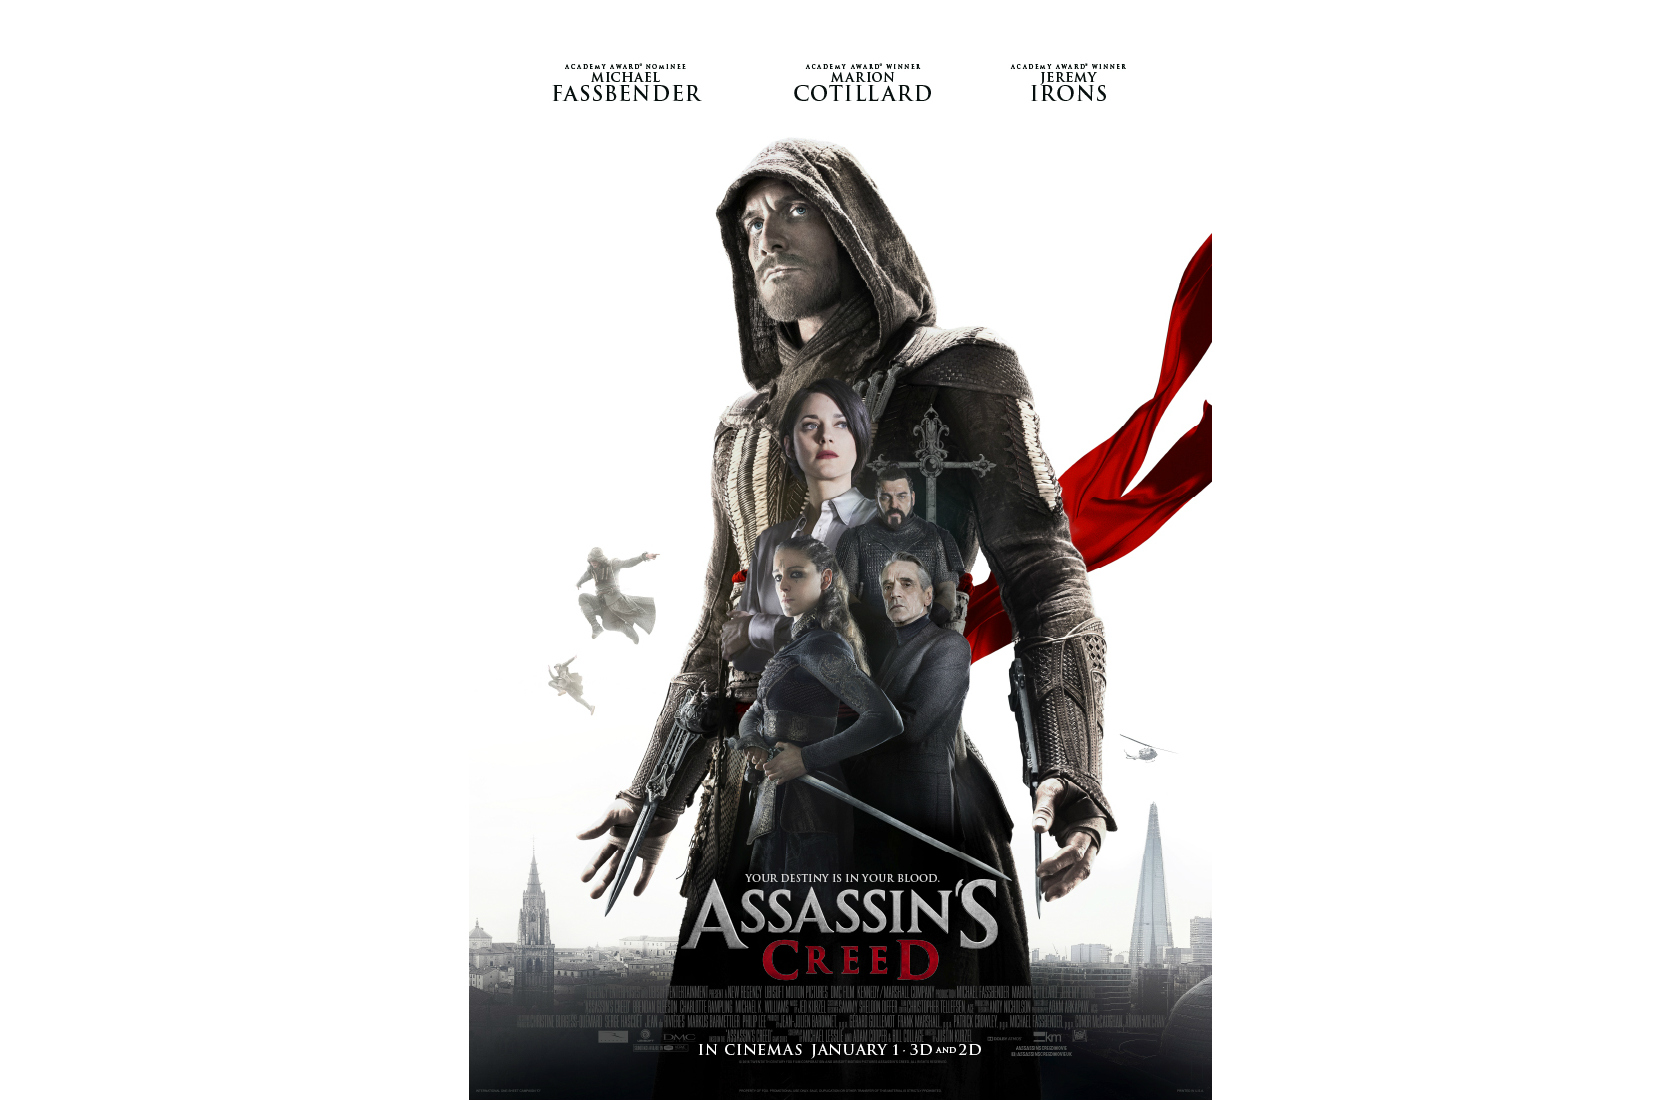 20th Century Fox Has Plans In Place For Assassin's Creed Trilogy